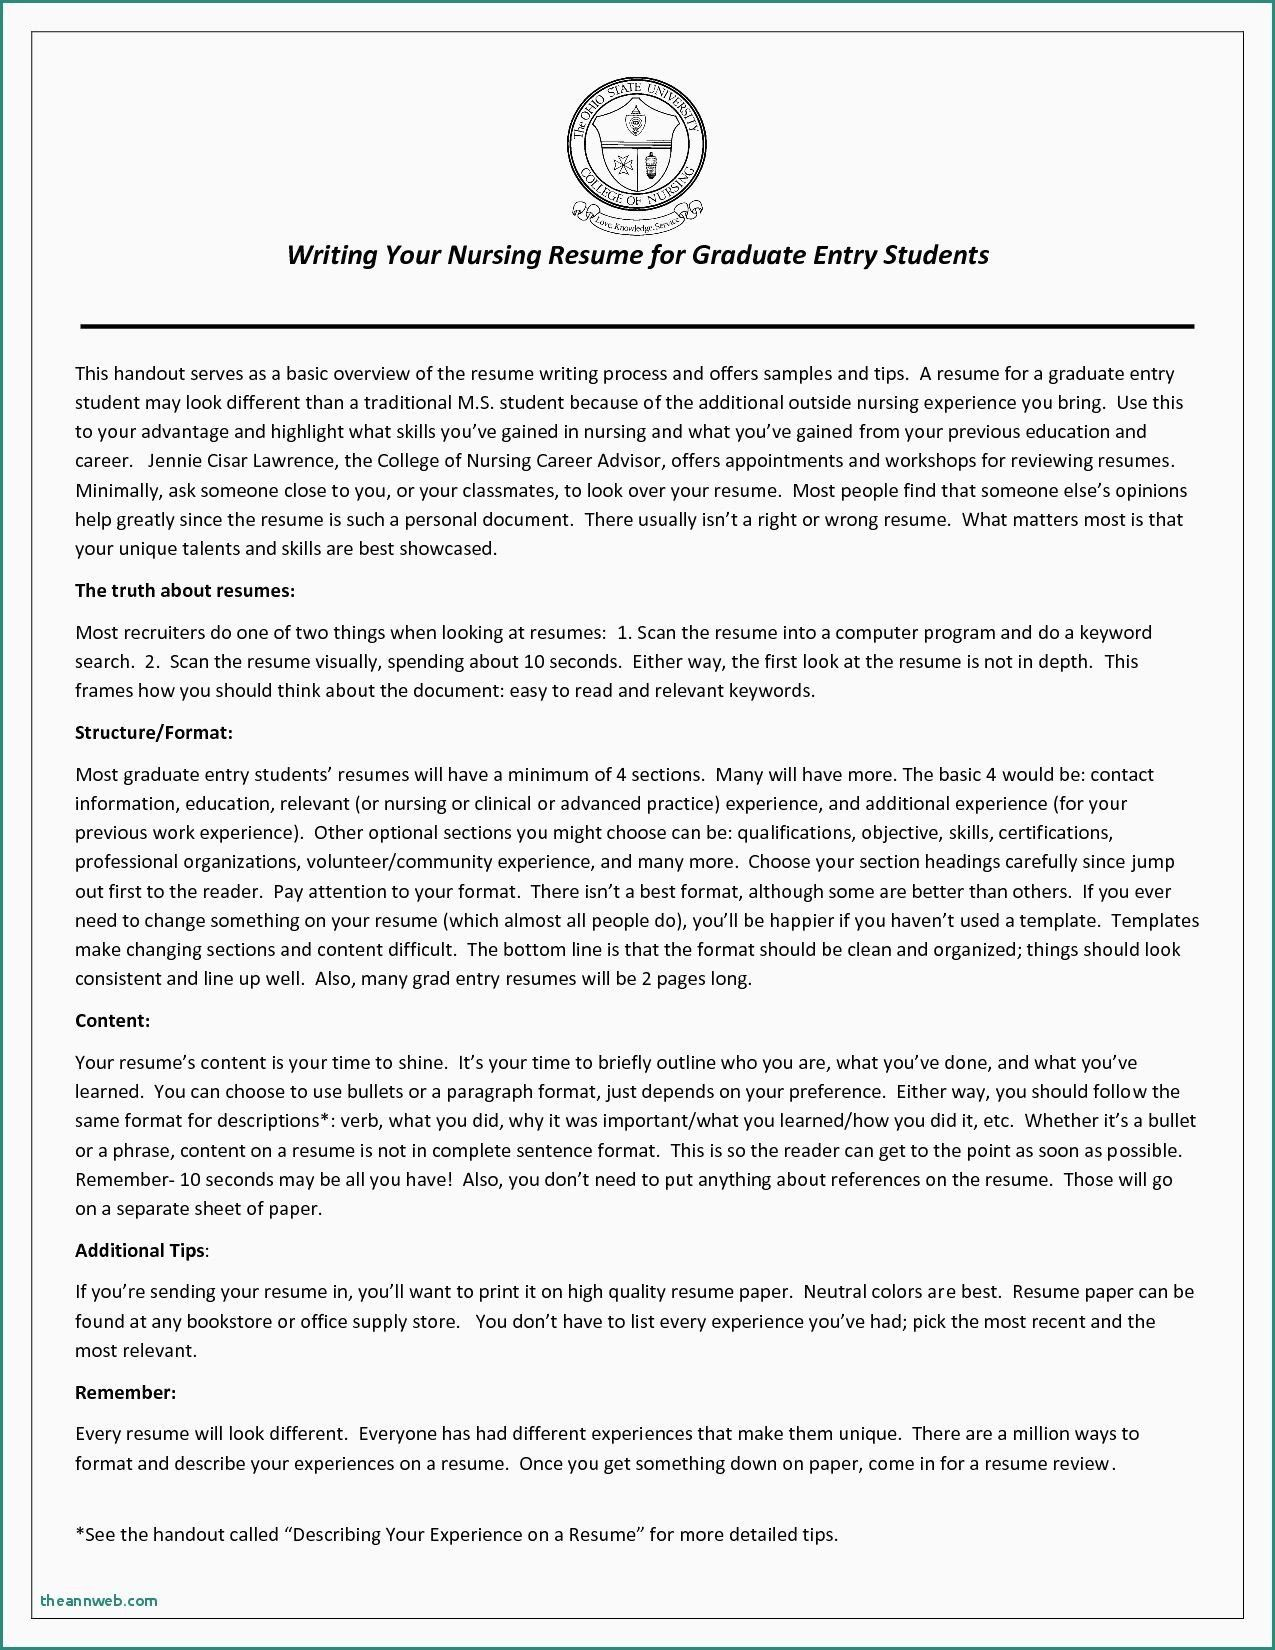 Best Paper For Resume Beautiful Resume Dos And Don Ts Resume Action Verbs Beautiful What Is In 2020 Nursing Resume Resume Writing Services Resume Writing